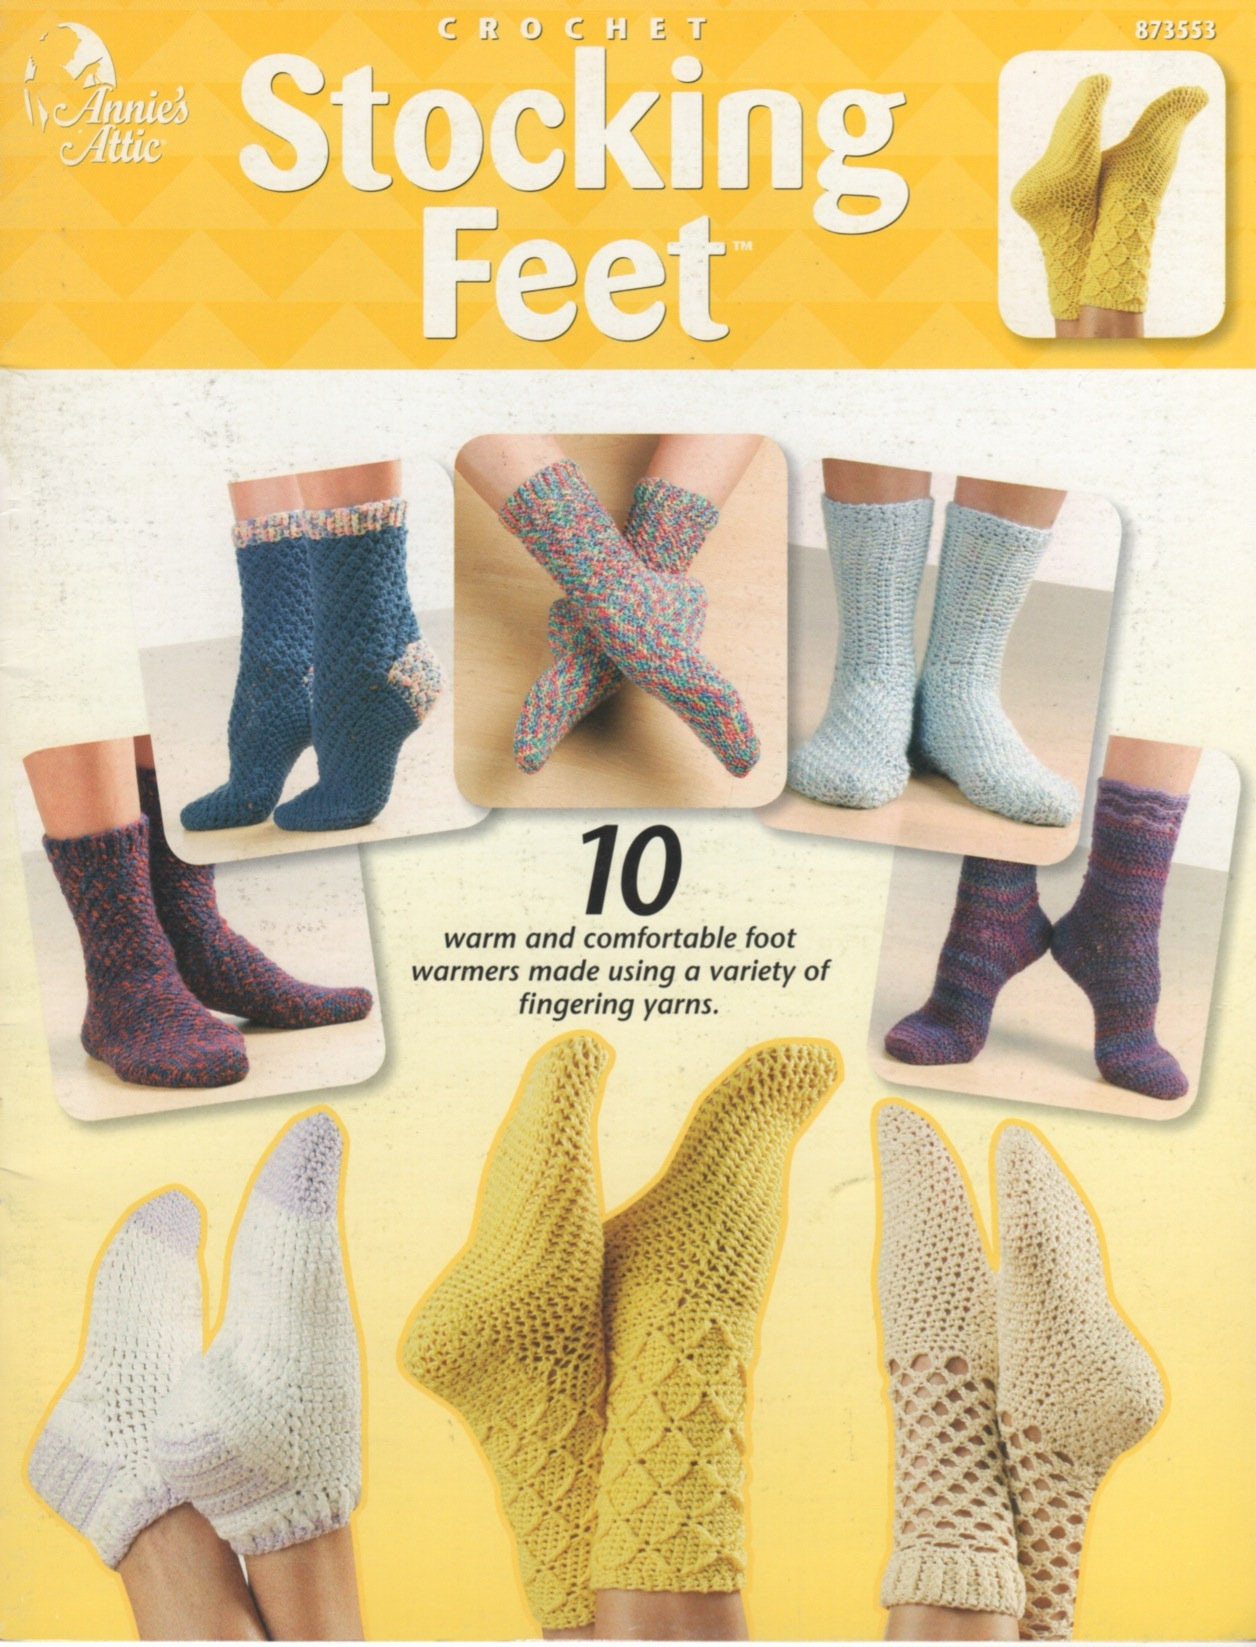 Stocking Feet 10 Warm Comfortable Foot Warmers Using A Etsy